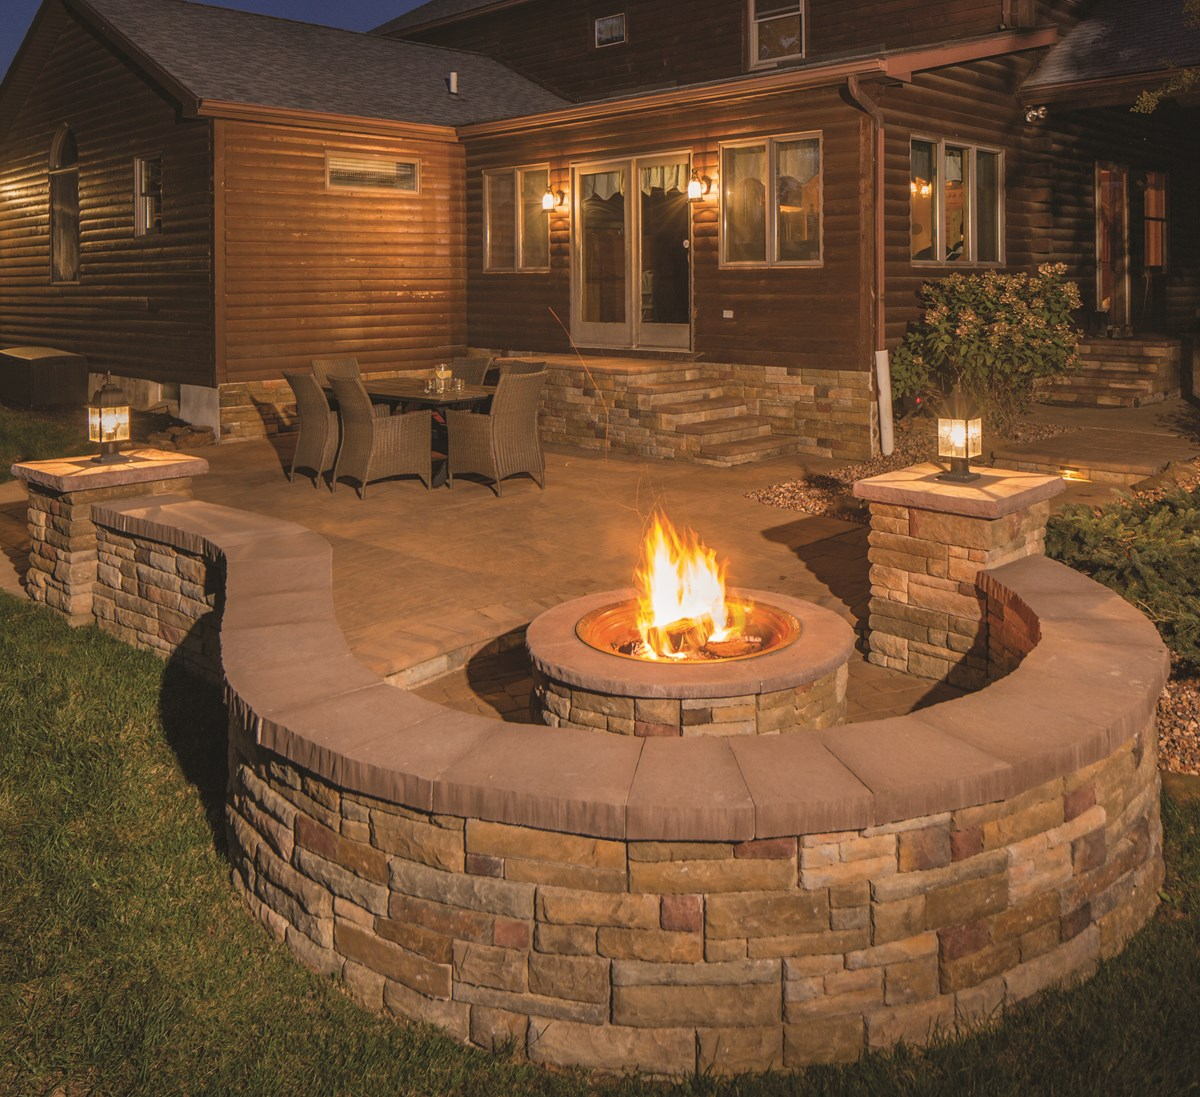 47_Rustic, outdoor evening scene with lit fire pit. Small ... on Pavers Patio With Fire Pit id=42608